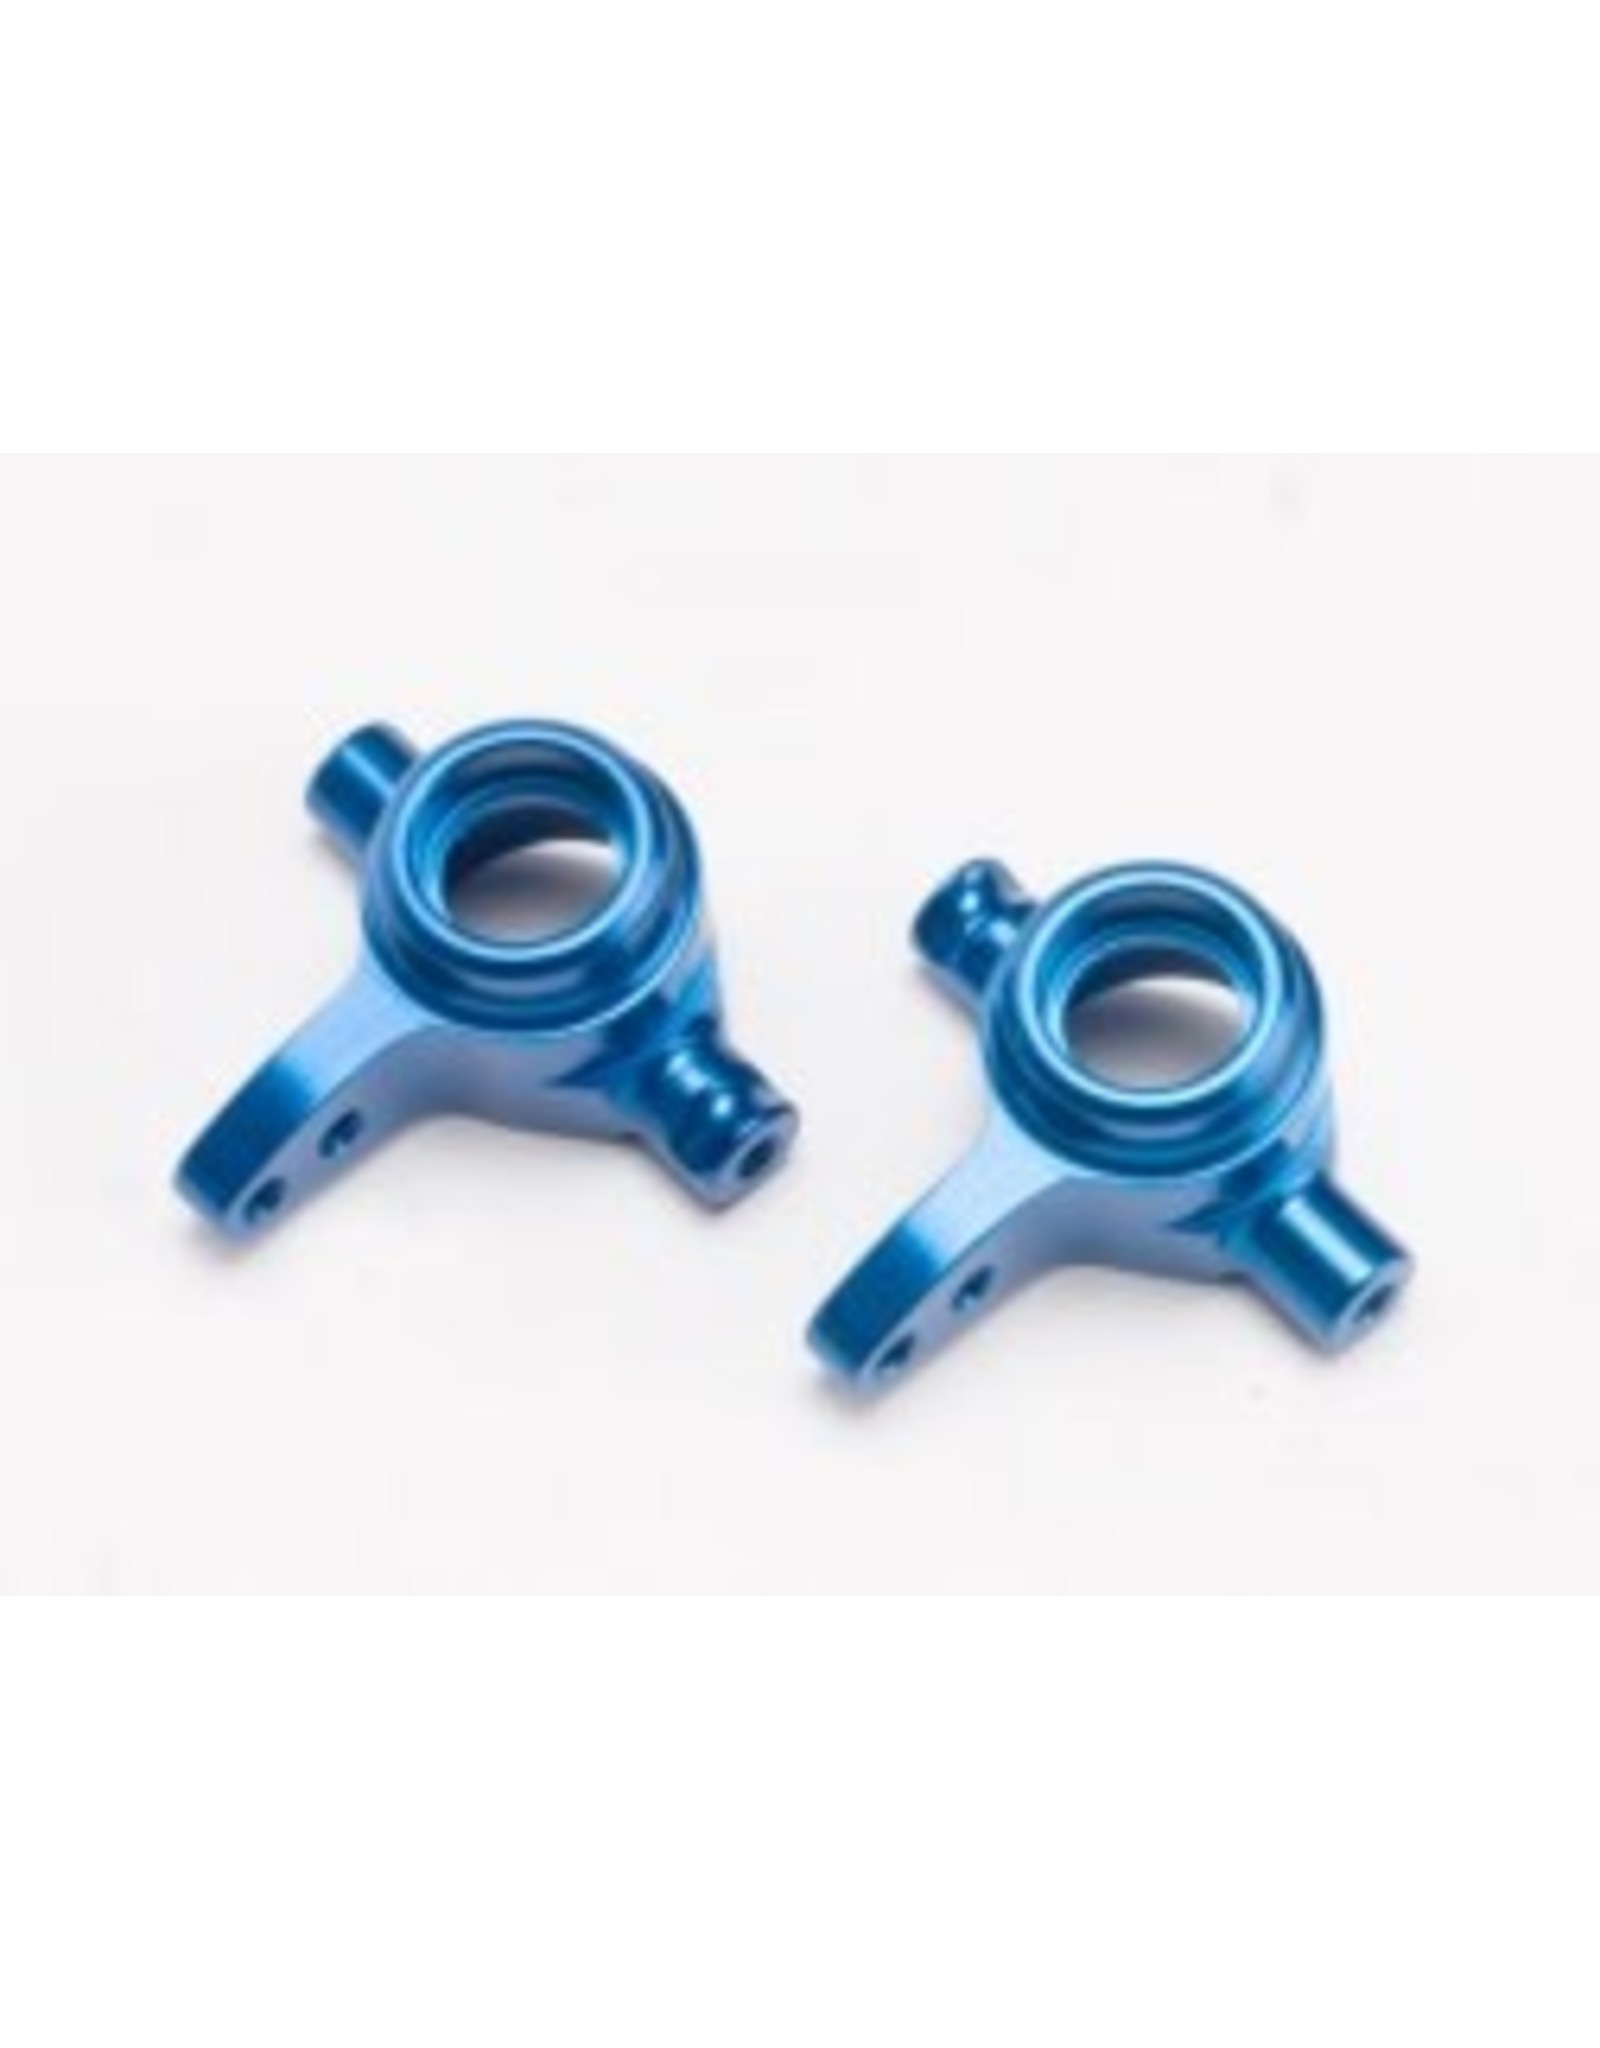 Traxxas Alum Steering Blocks (L&R), Blue: SLH 4x4, Stamp 4x4  (6837X)